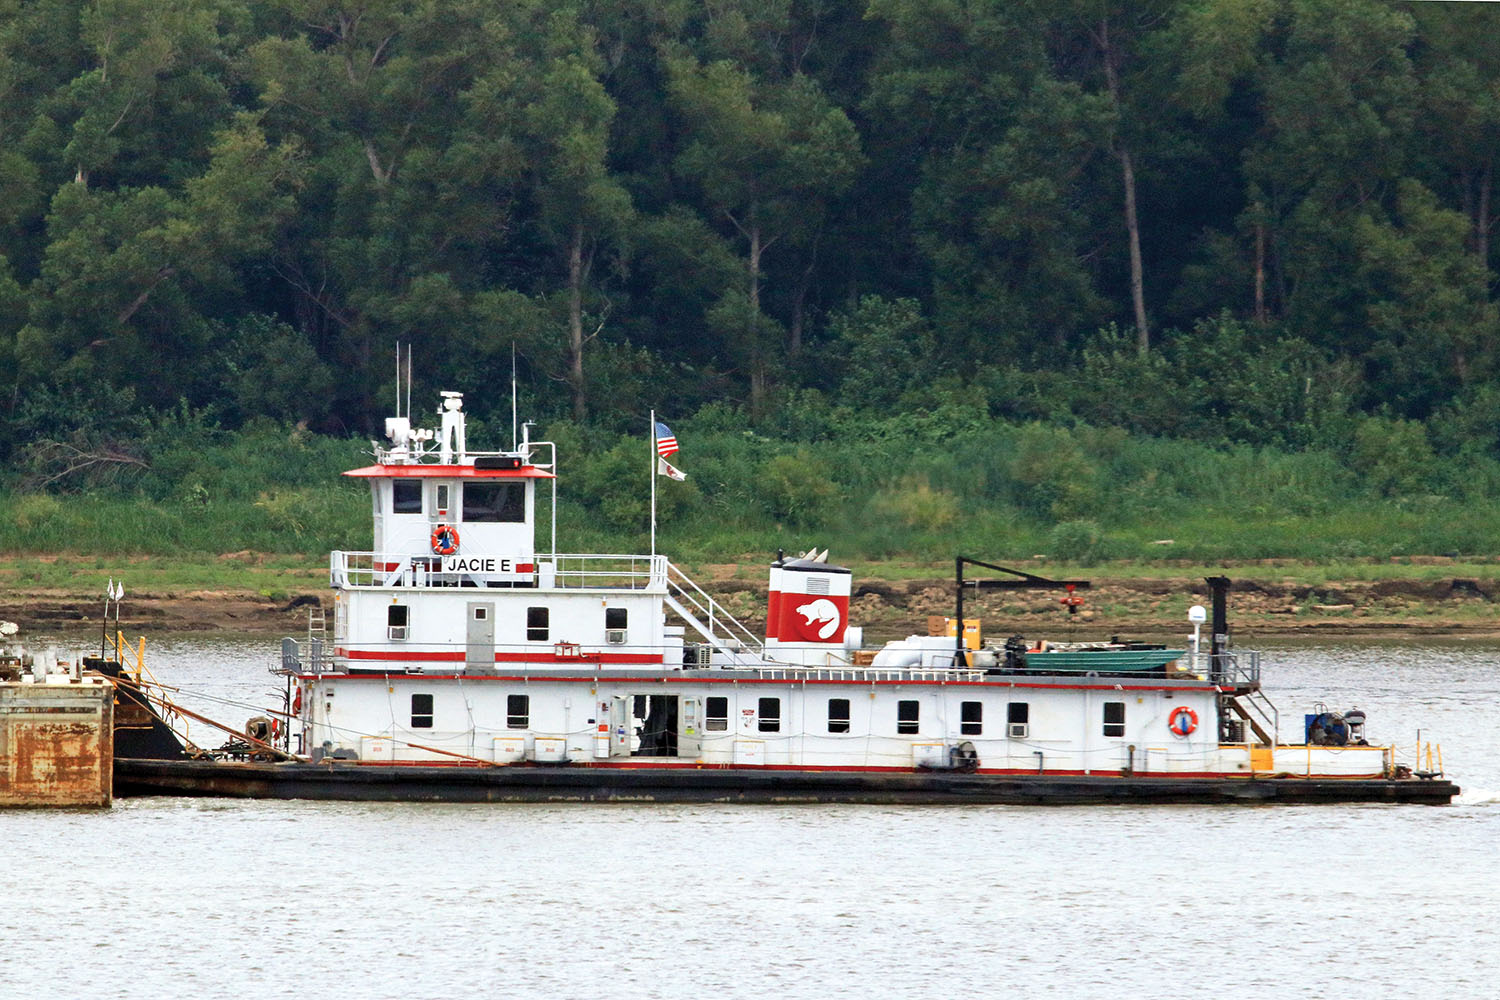 The mv. Jacie E was built in 1953 as the La Salle. It previously served in the Excell fleet as the River Wolverine and then the Capt. Dick Morton. (Photo by Jeff L. Yates)